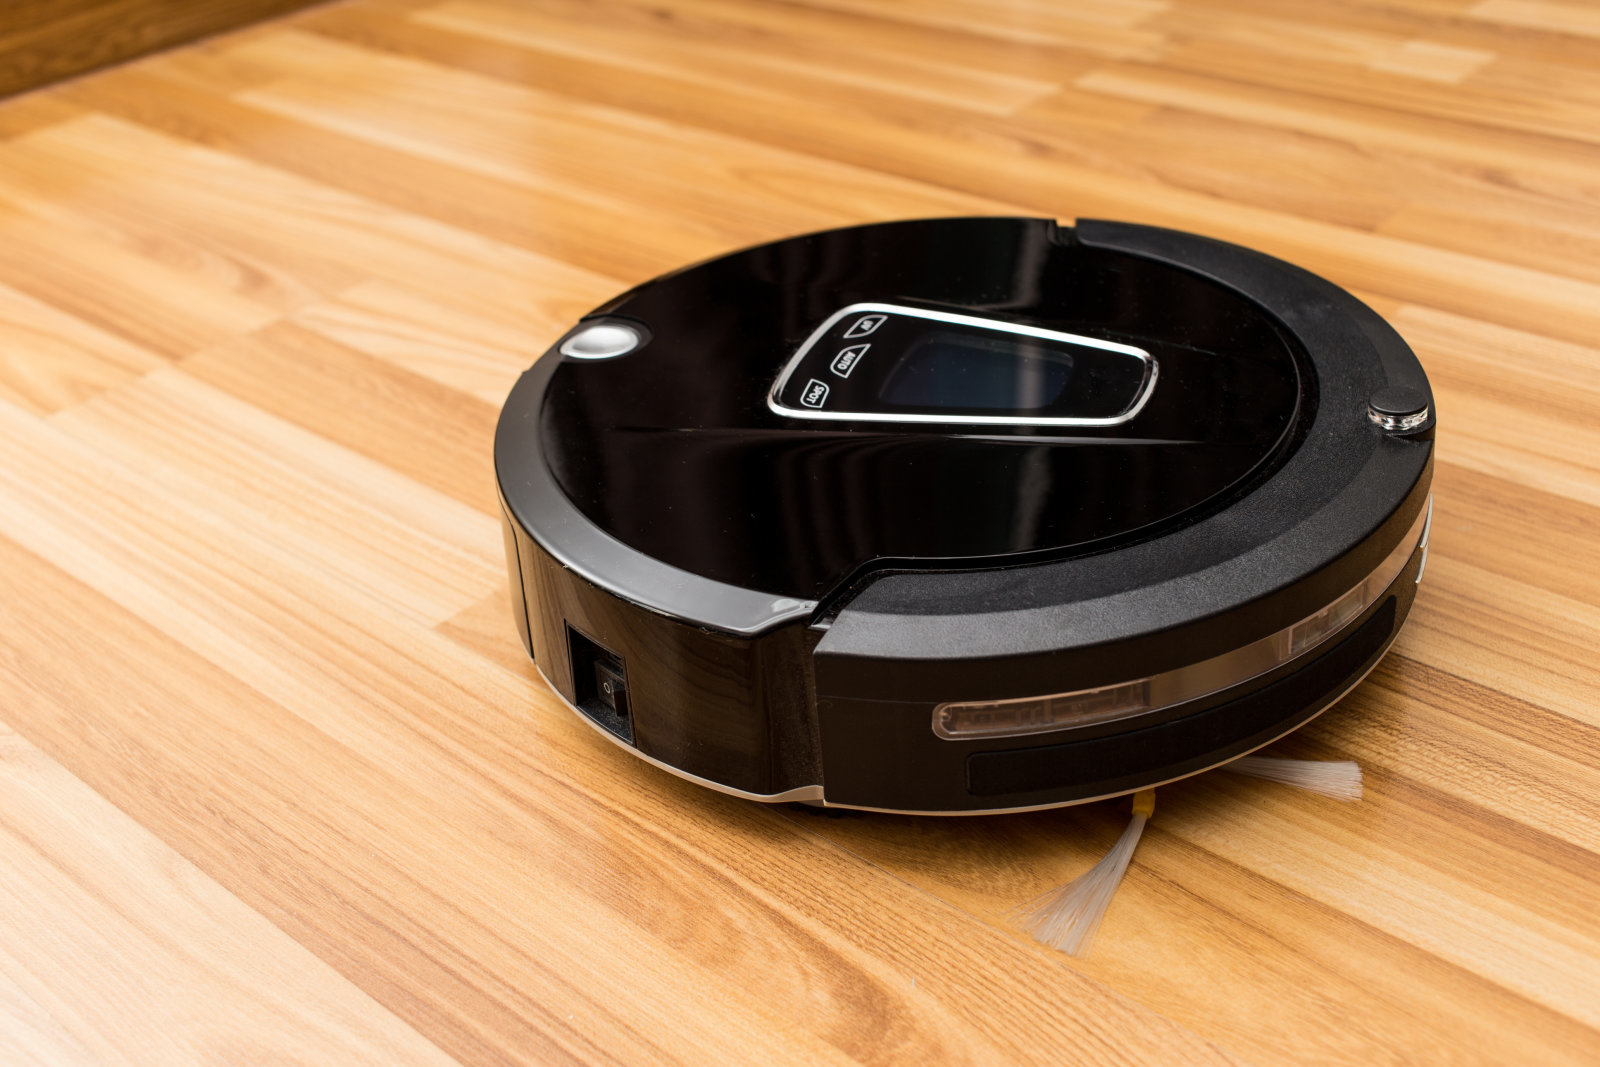 Robotic vacuum cleaner on wood parquet floor, Smart vacuum, new automate technology housework.Robotic vacuum cleaner on wood parquet floor, Smart vacuum, new automate technology housework.Robotic vacuum cleaner on wood parquet floor, Smart vacuum, new automate technology housework.